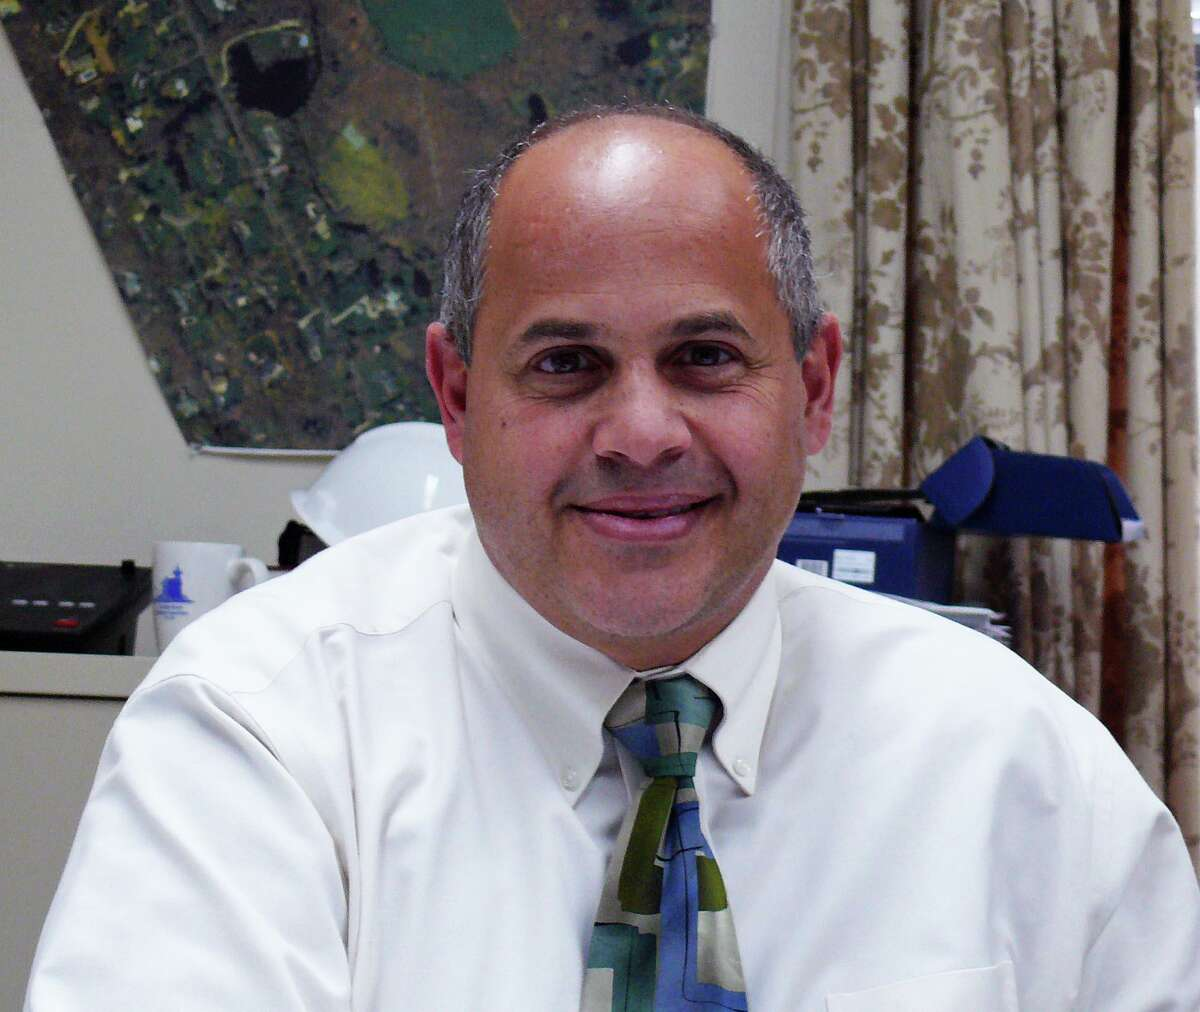 Former Fairfield Public Works Director Joseph Michelangelo faces new criminal charges.